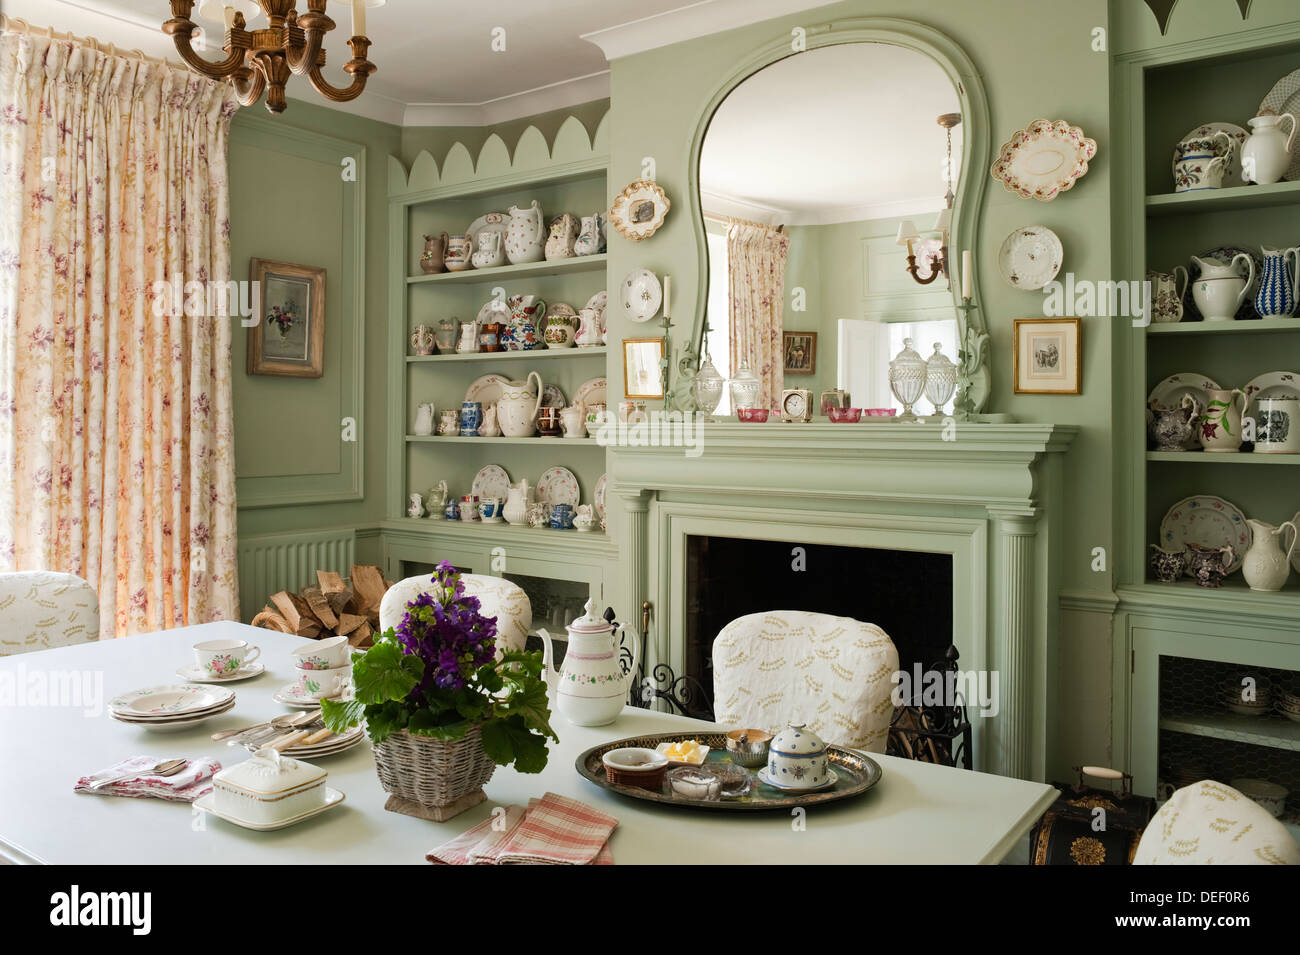 Country House Dining Room With Pottert Collection On Recessed Shelving Painted In Pastel Green